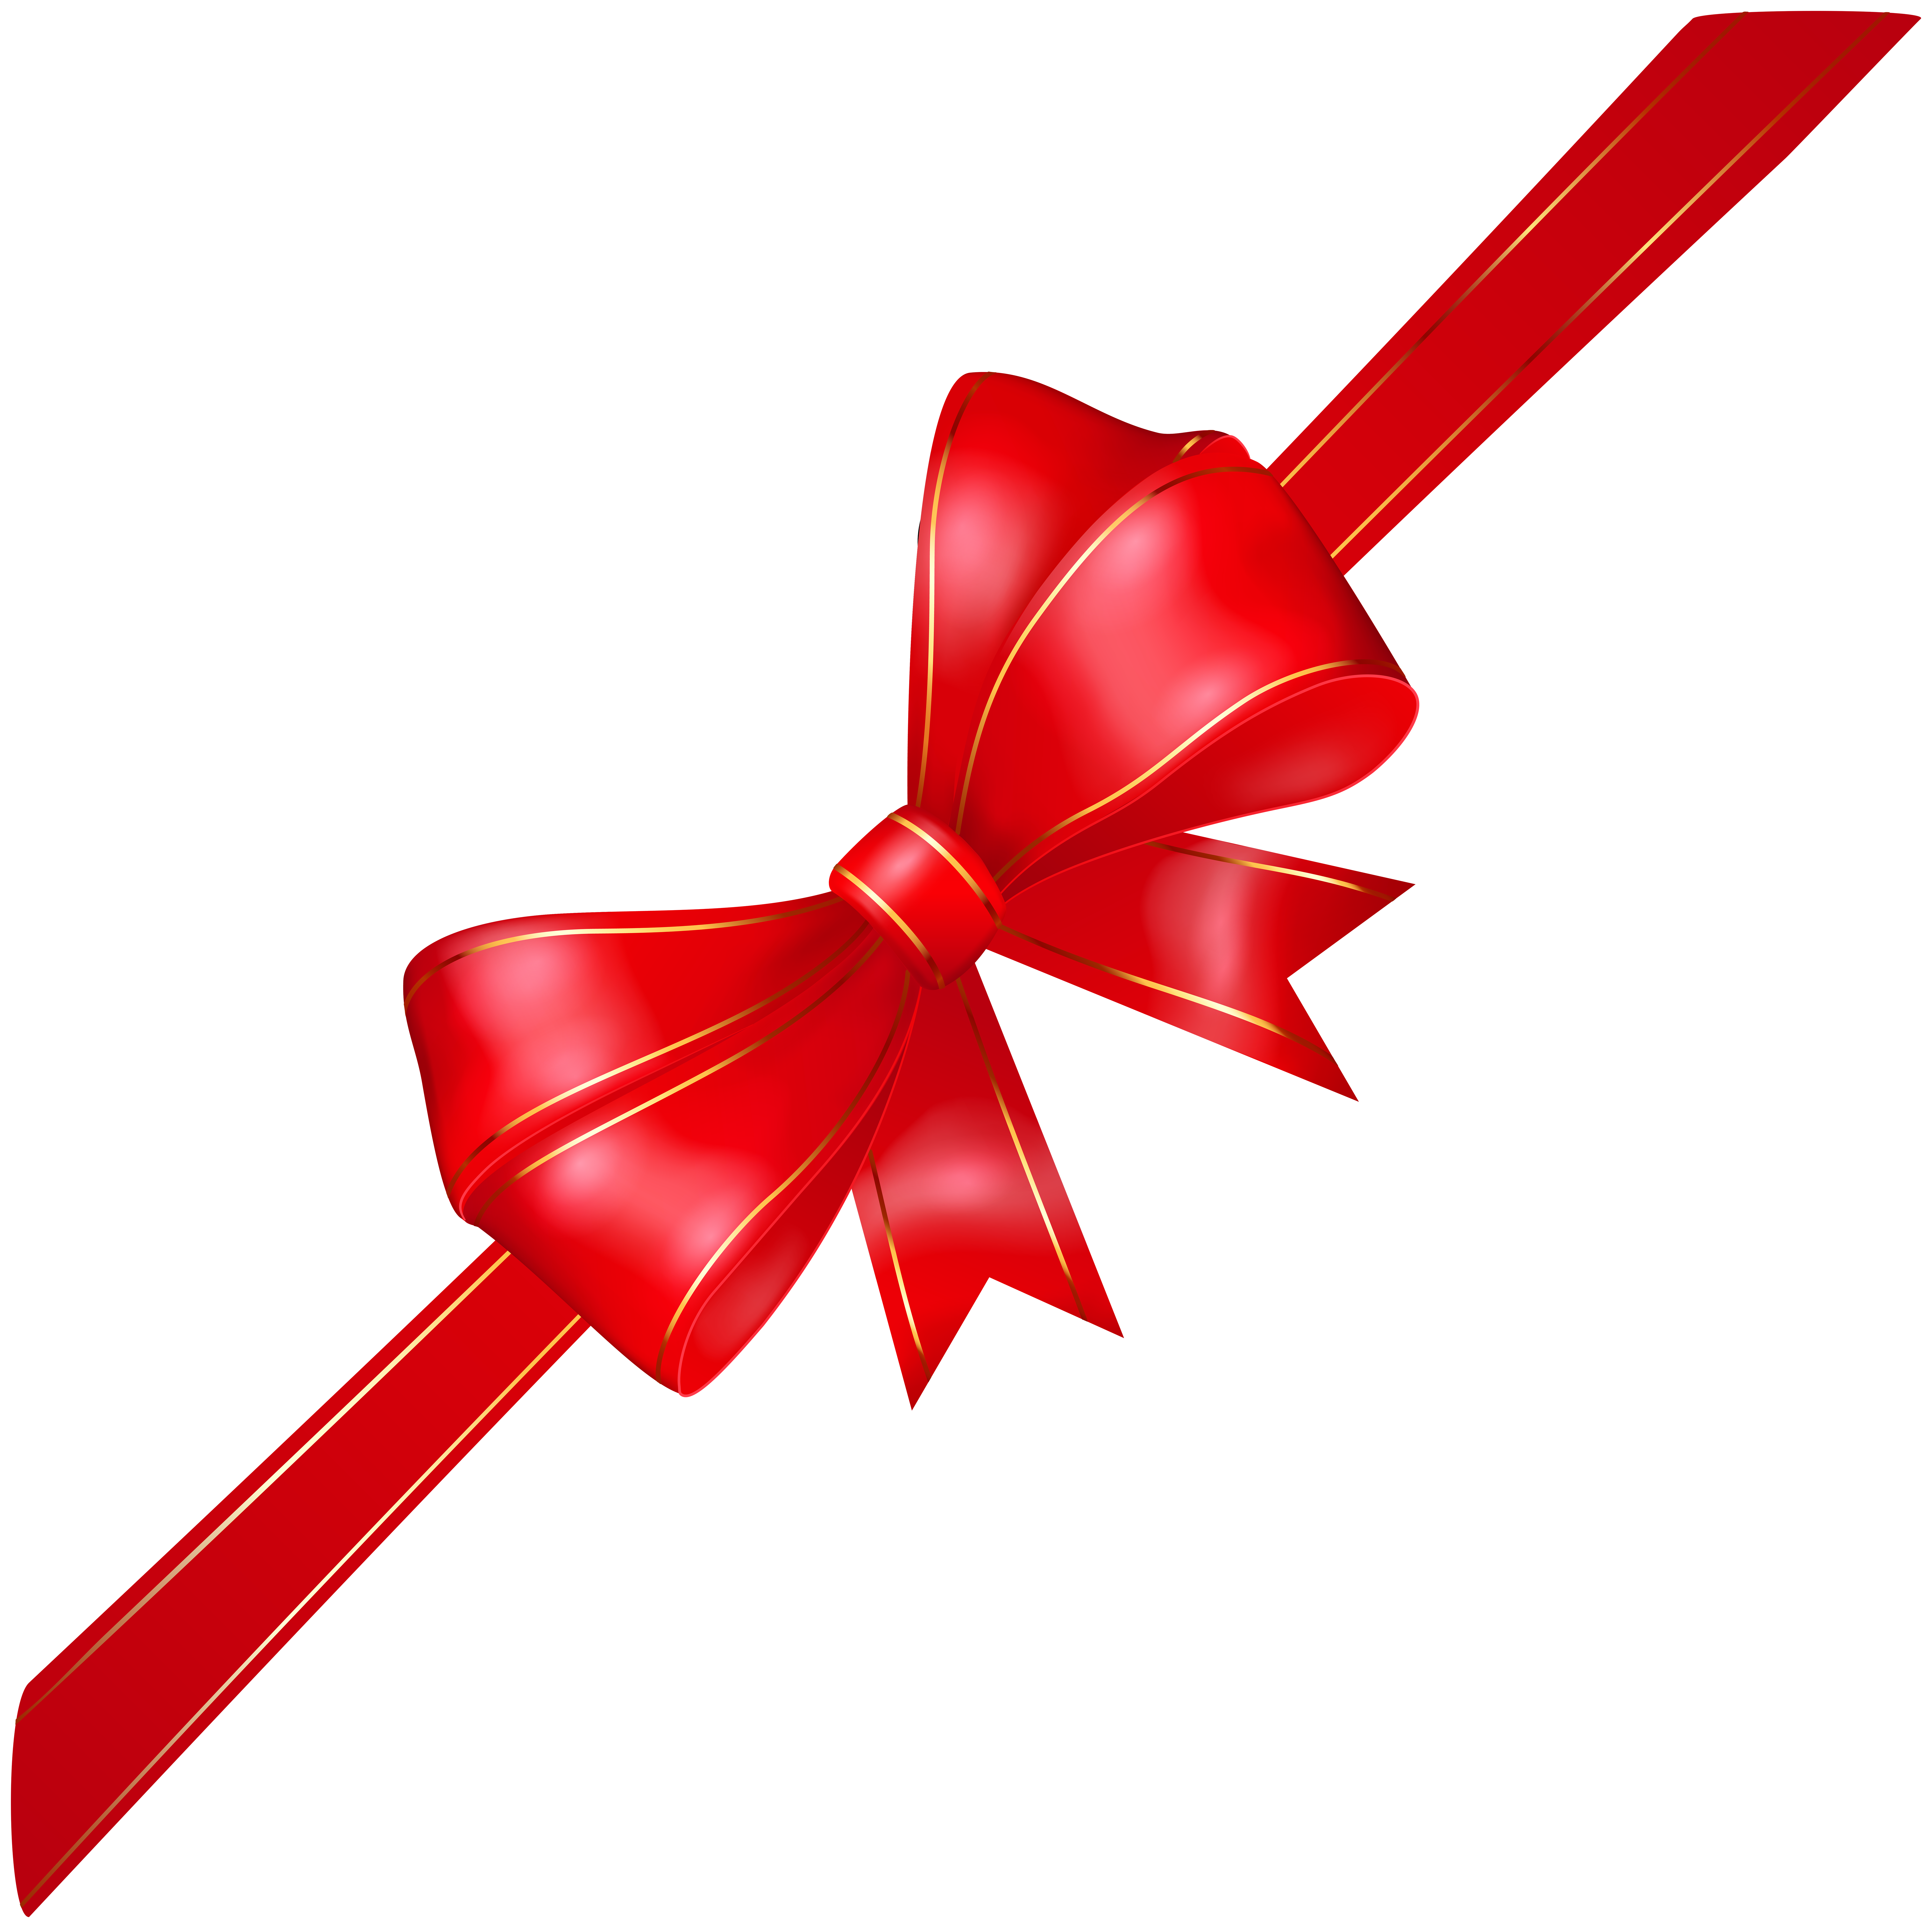 Red Corner Bow Transparent Png Image Gallery Yopriceville High Quality Images And Transparent Png Free Clipart Free Clip Art Bow Drawing Bow Wallpaper